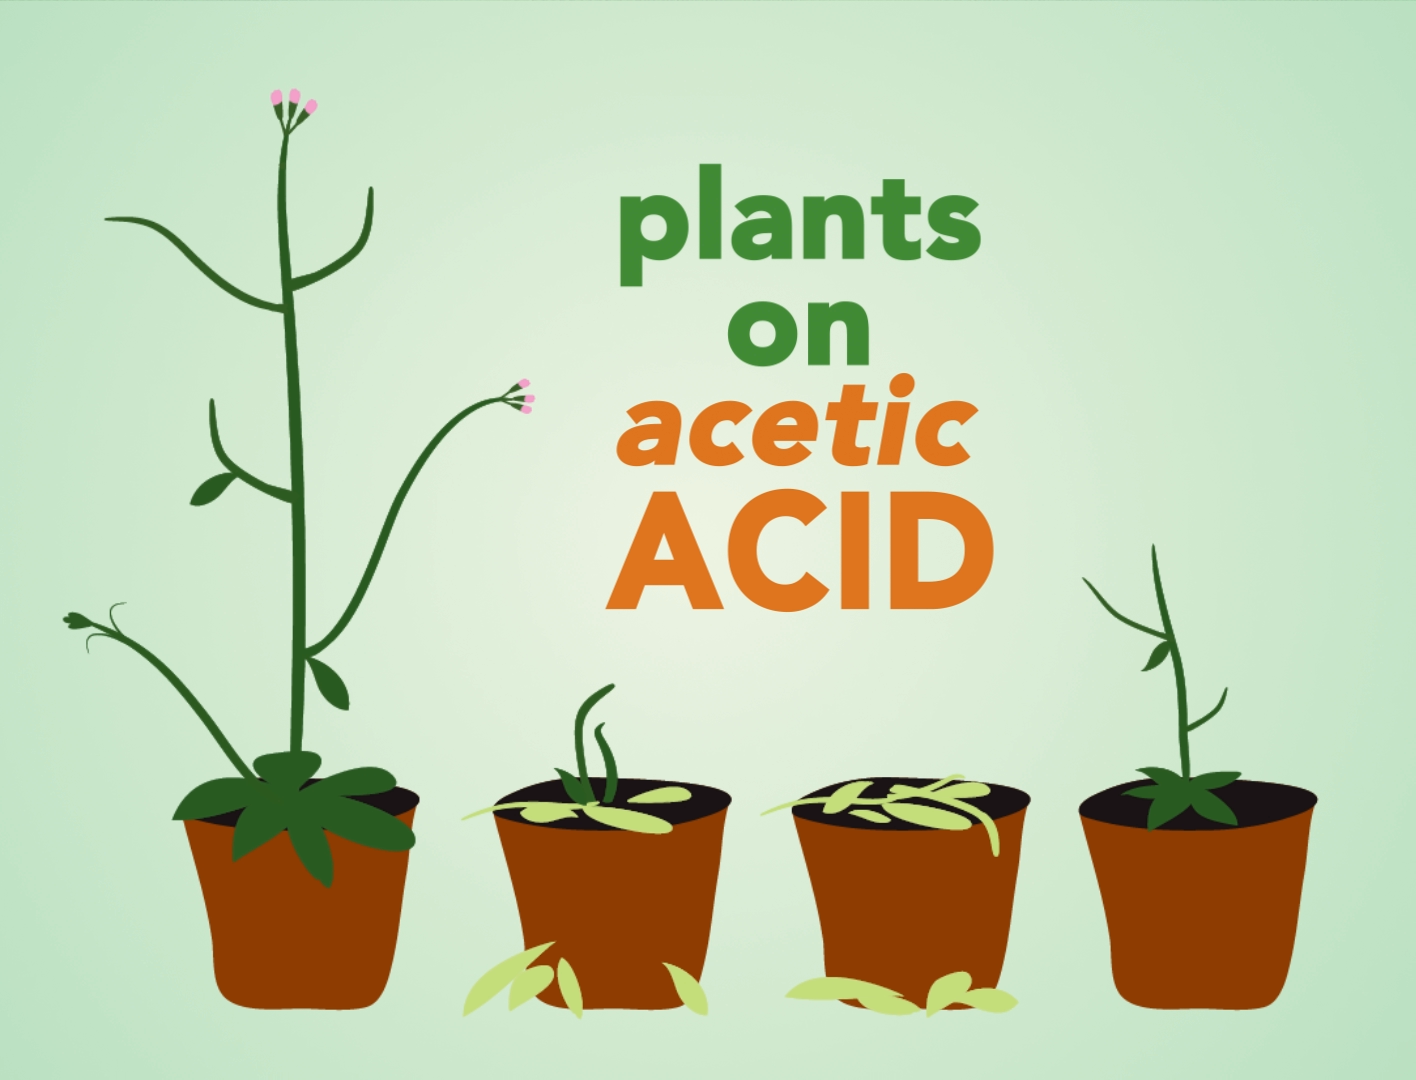 plants on acid cartoon